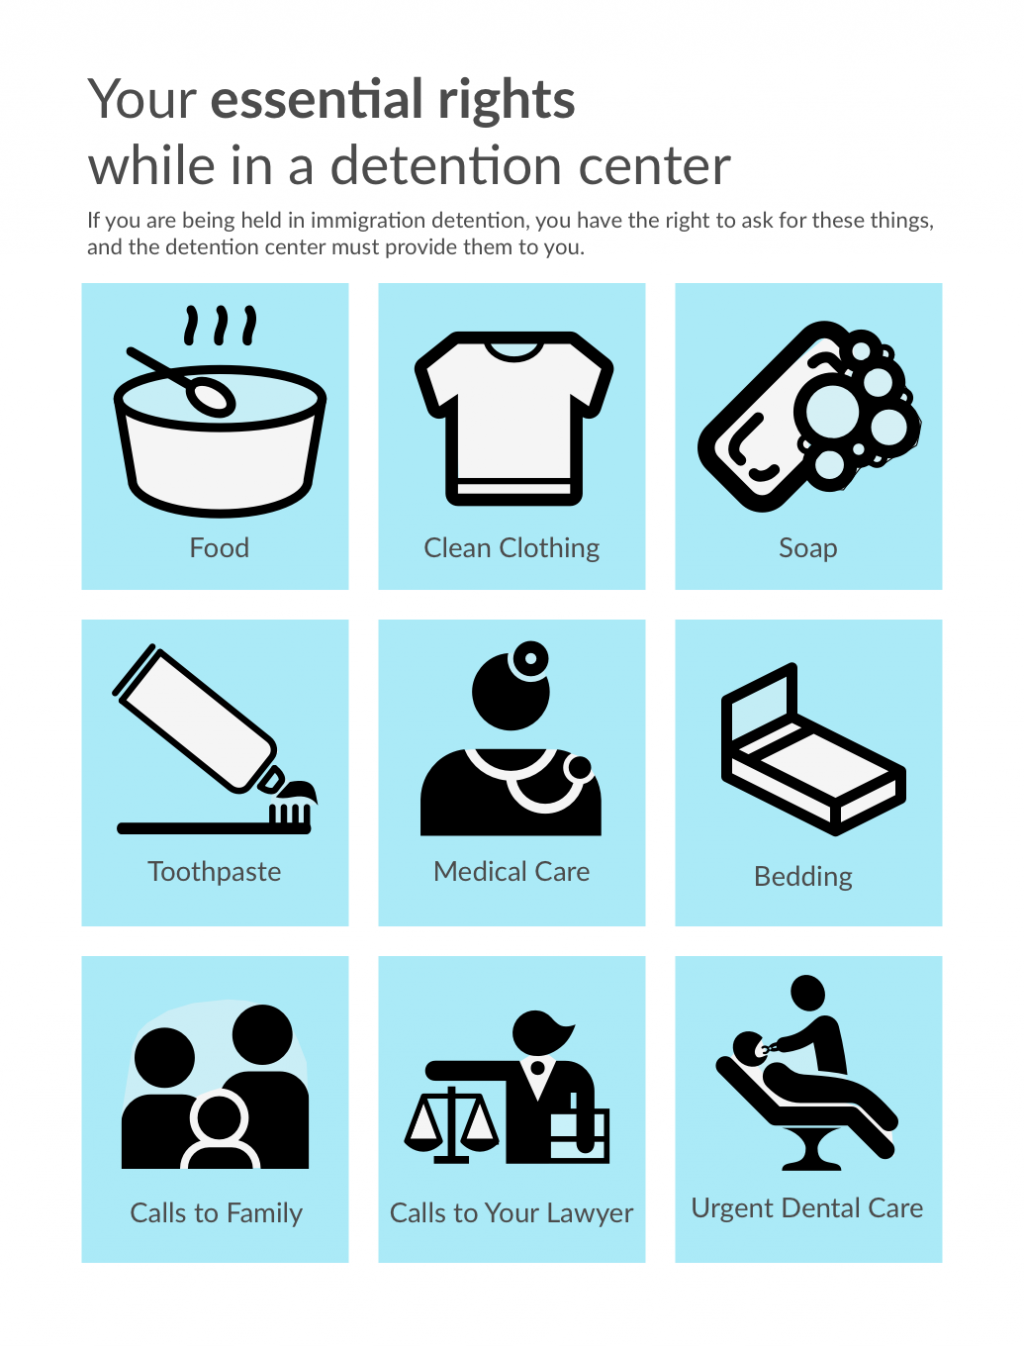 Know Your RIghts Essentials - detention center rights for immigrants